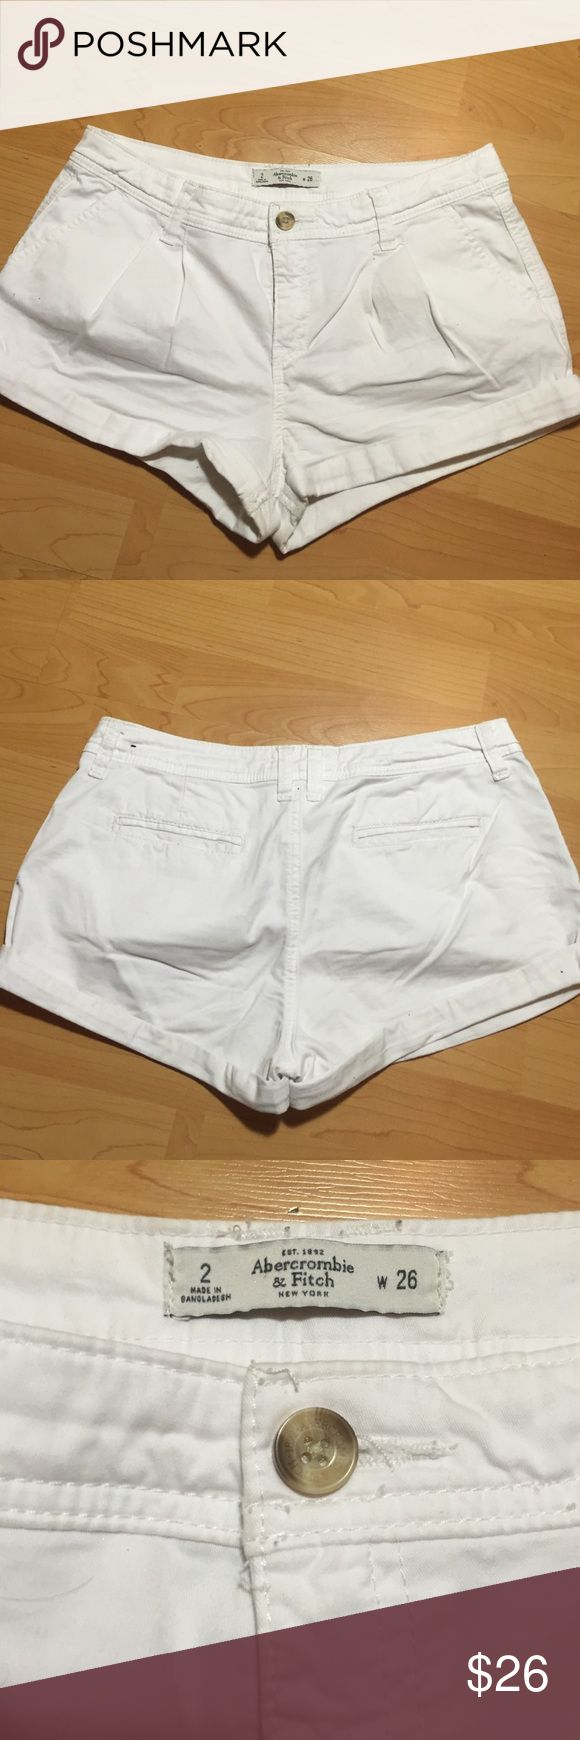 Abercrombie and Fitch white shorts Abercrombie and Fitch white shorts. Perfect for the summer. Abercrombie & Fitch Shorts Skorts